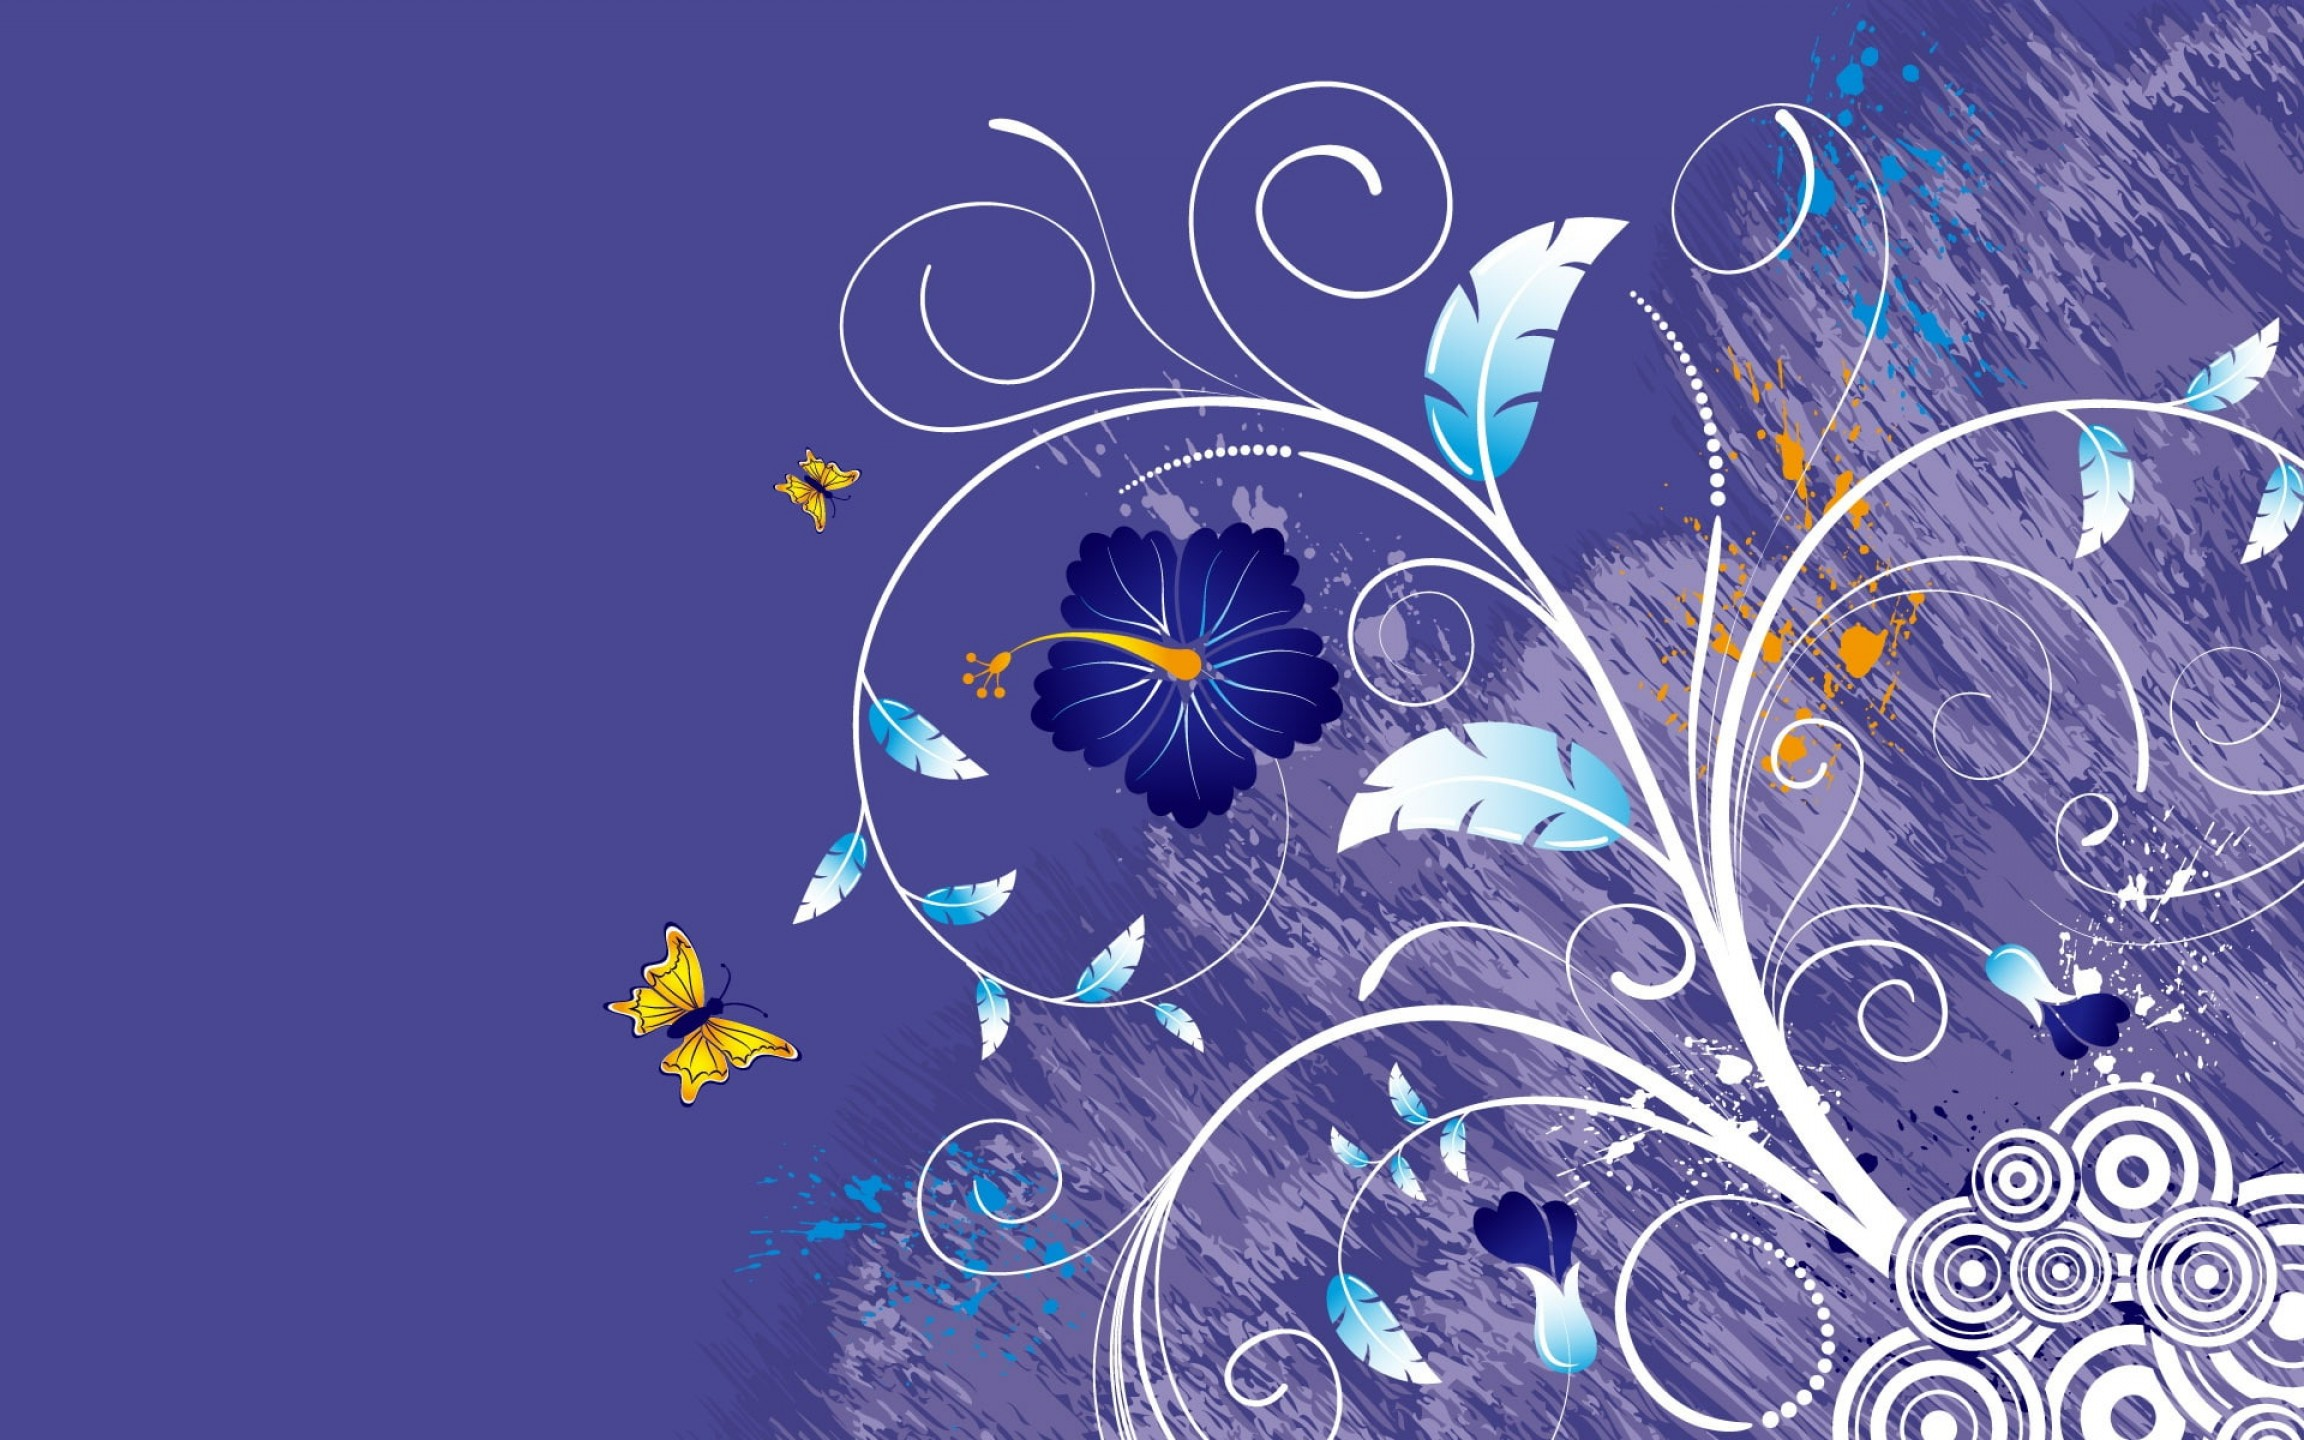 Purple Butterfly Wallpaper Vector: Vector Background Of Flowers And Butterflies Butterfly Wallpaper Mbbbb